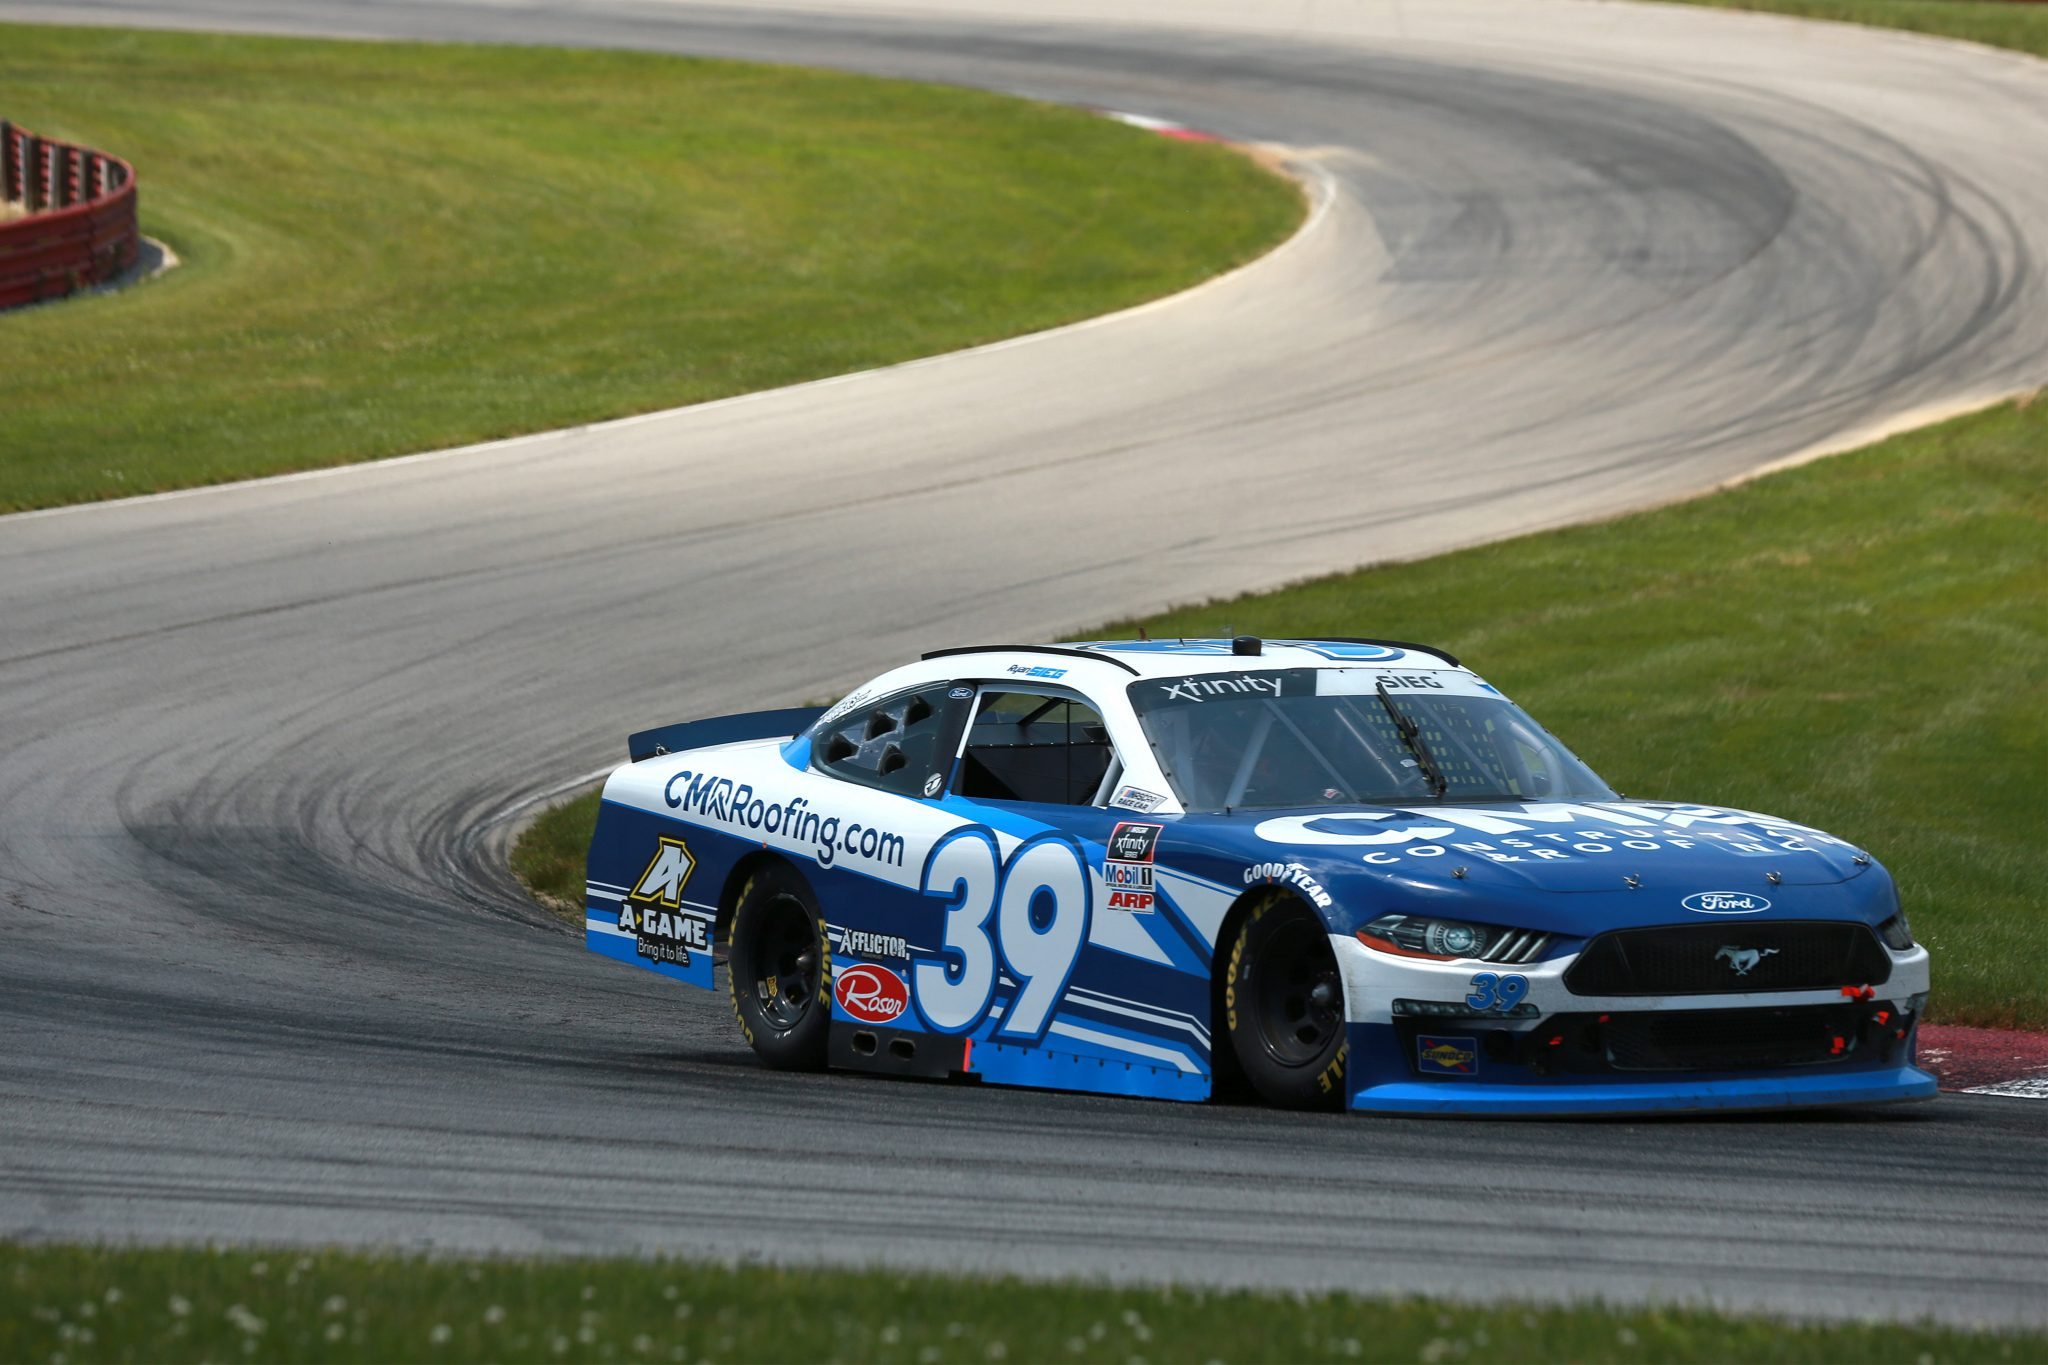 LEXINGTON, OHIO - JUNE 05: Ryan Sieg, driver of the #39 CMR Construction and Roofing/A-Game Ford, drives during the NASCAR Xfinity Series B&L Transport 170 at Mid-Ohio Sports Car Course on June 05, 2021 in Lexington, Ohio. (Photo by Sean Gardner/Getty Images) | Getty Images